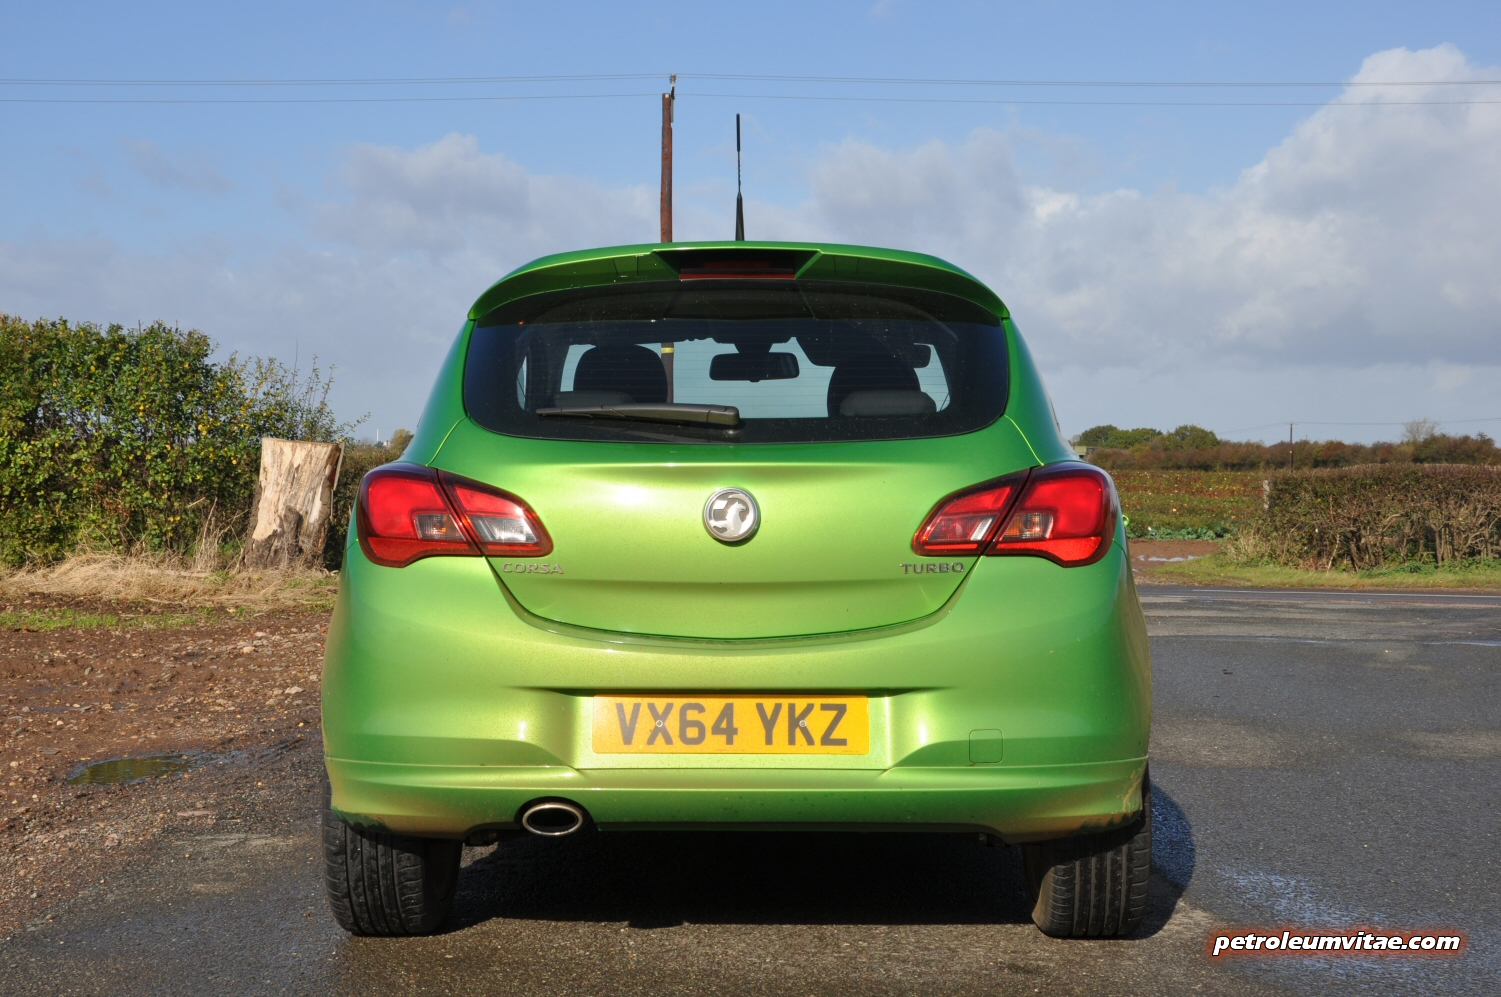 New For 2015 Vauxhall Corsa First Impressions 171 Petroleum